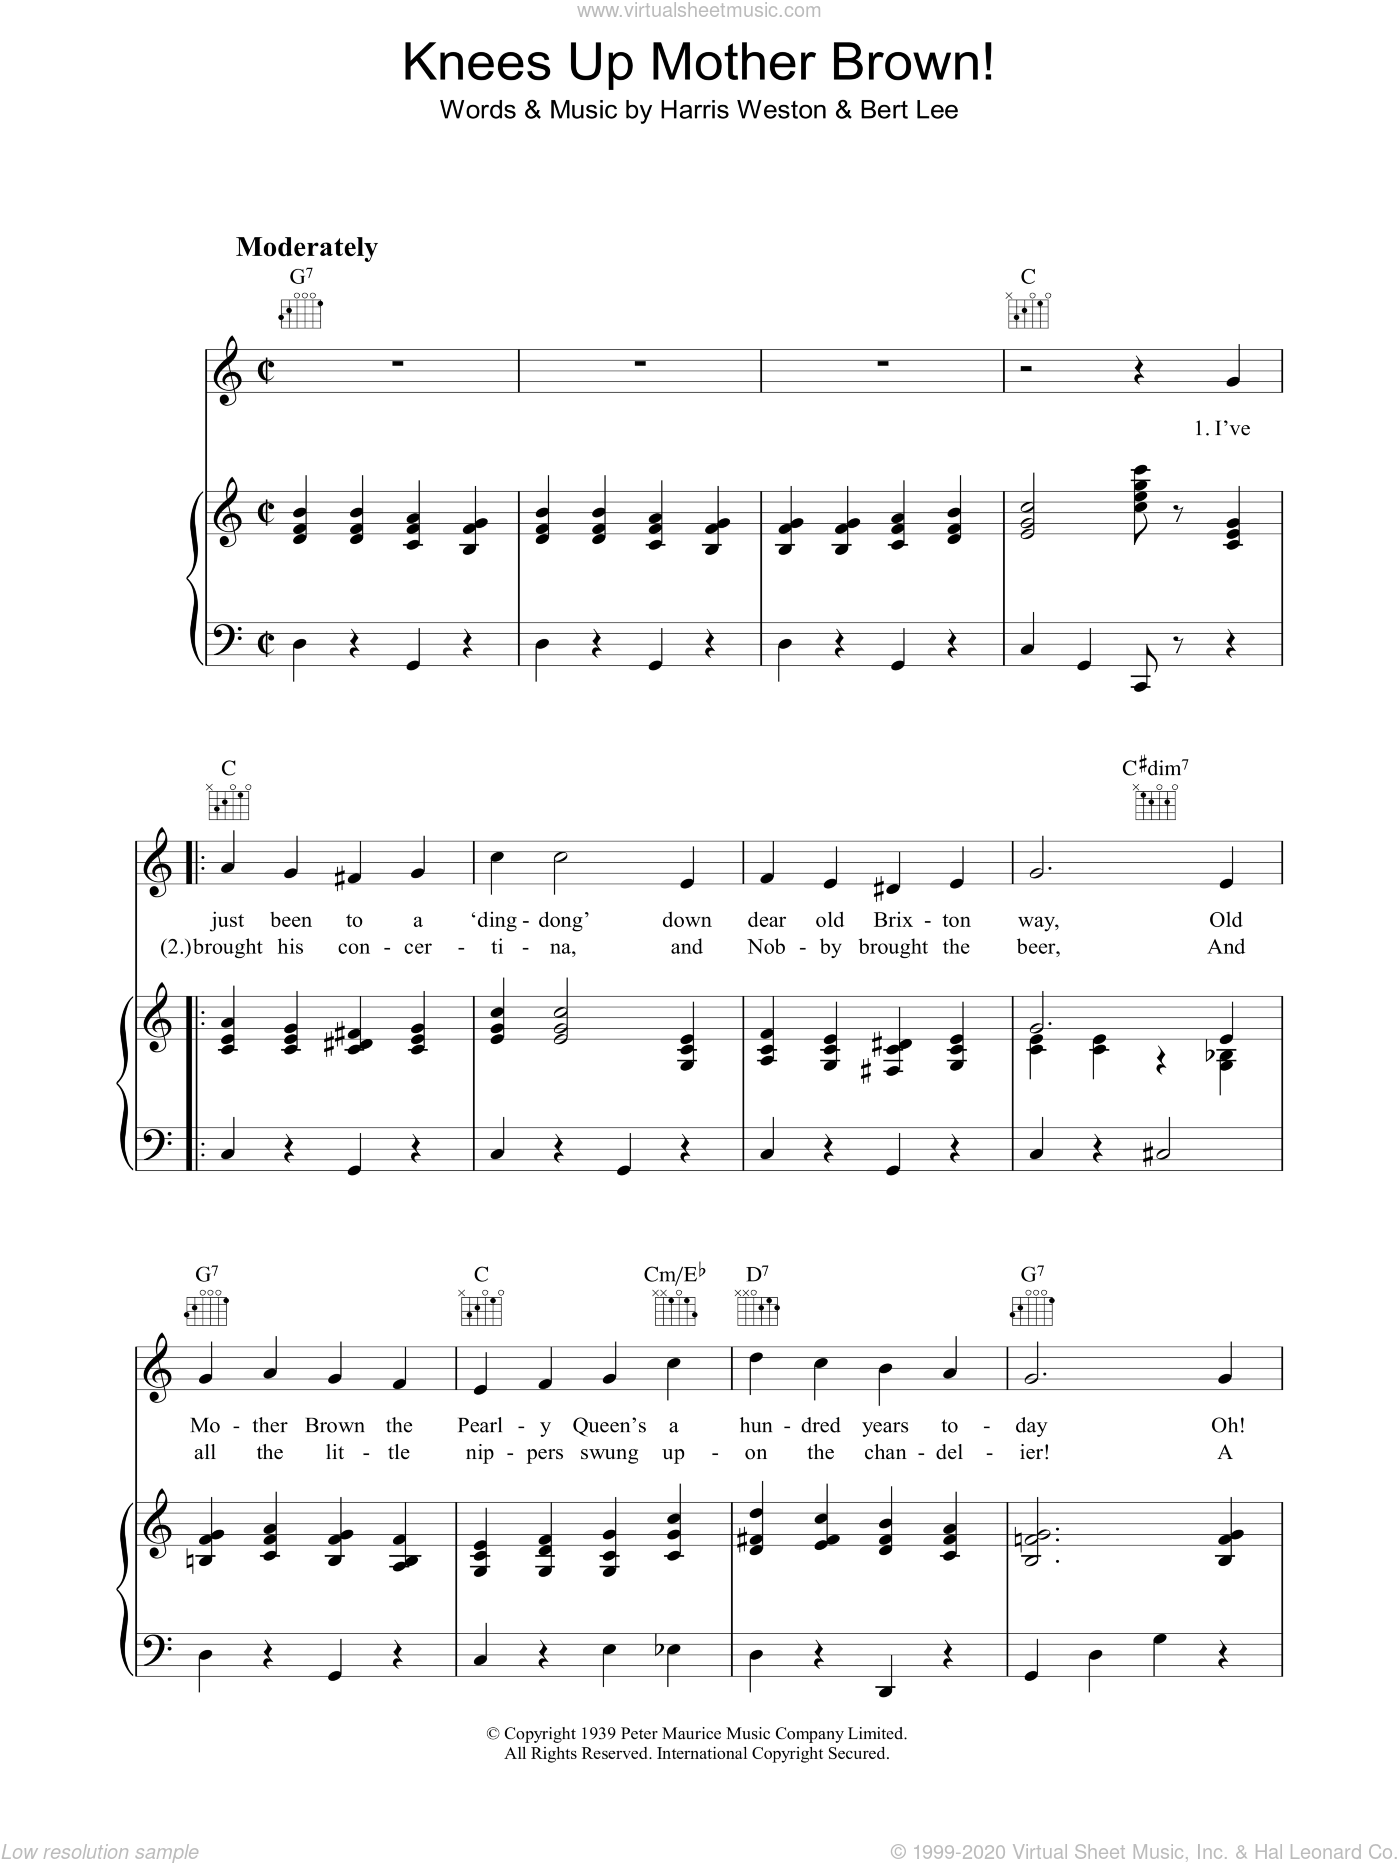 Knees Up Mother Brown sheet music for voice, piano or guitar by Bert Lee. Score Image Preview.